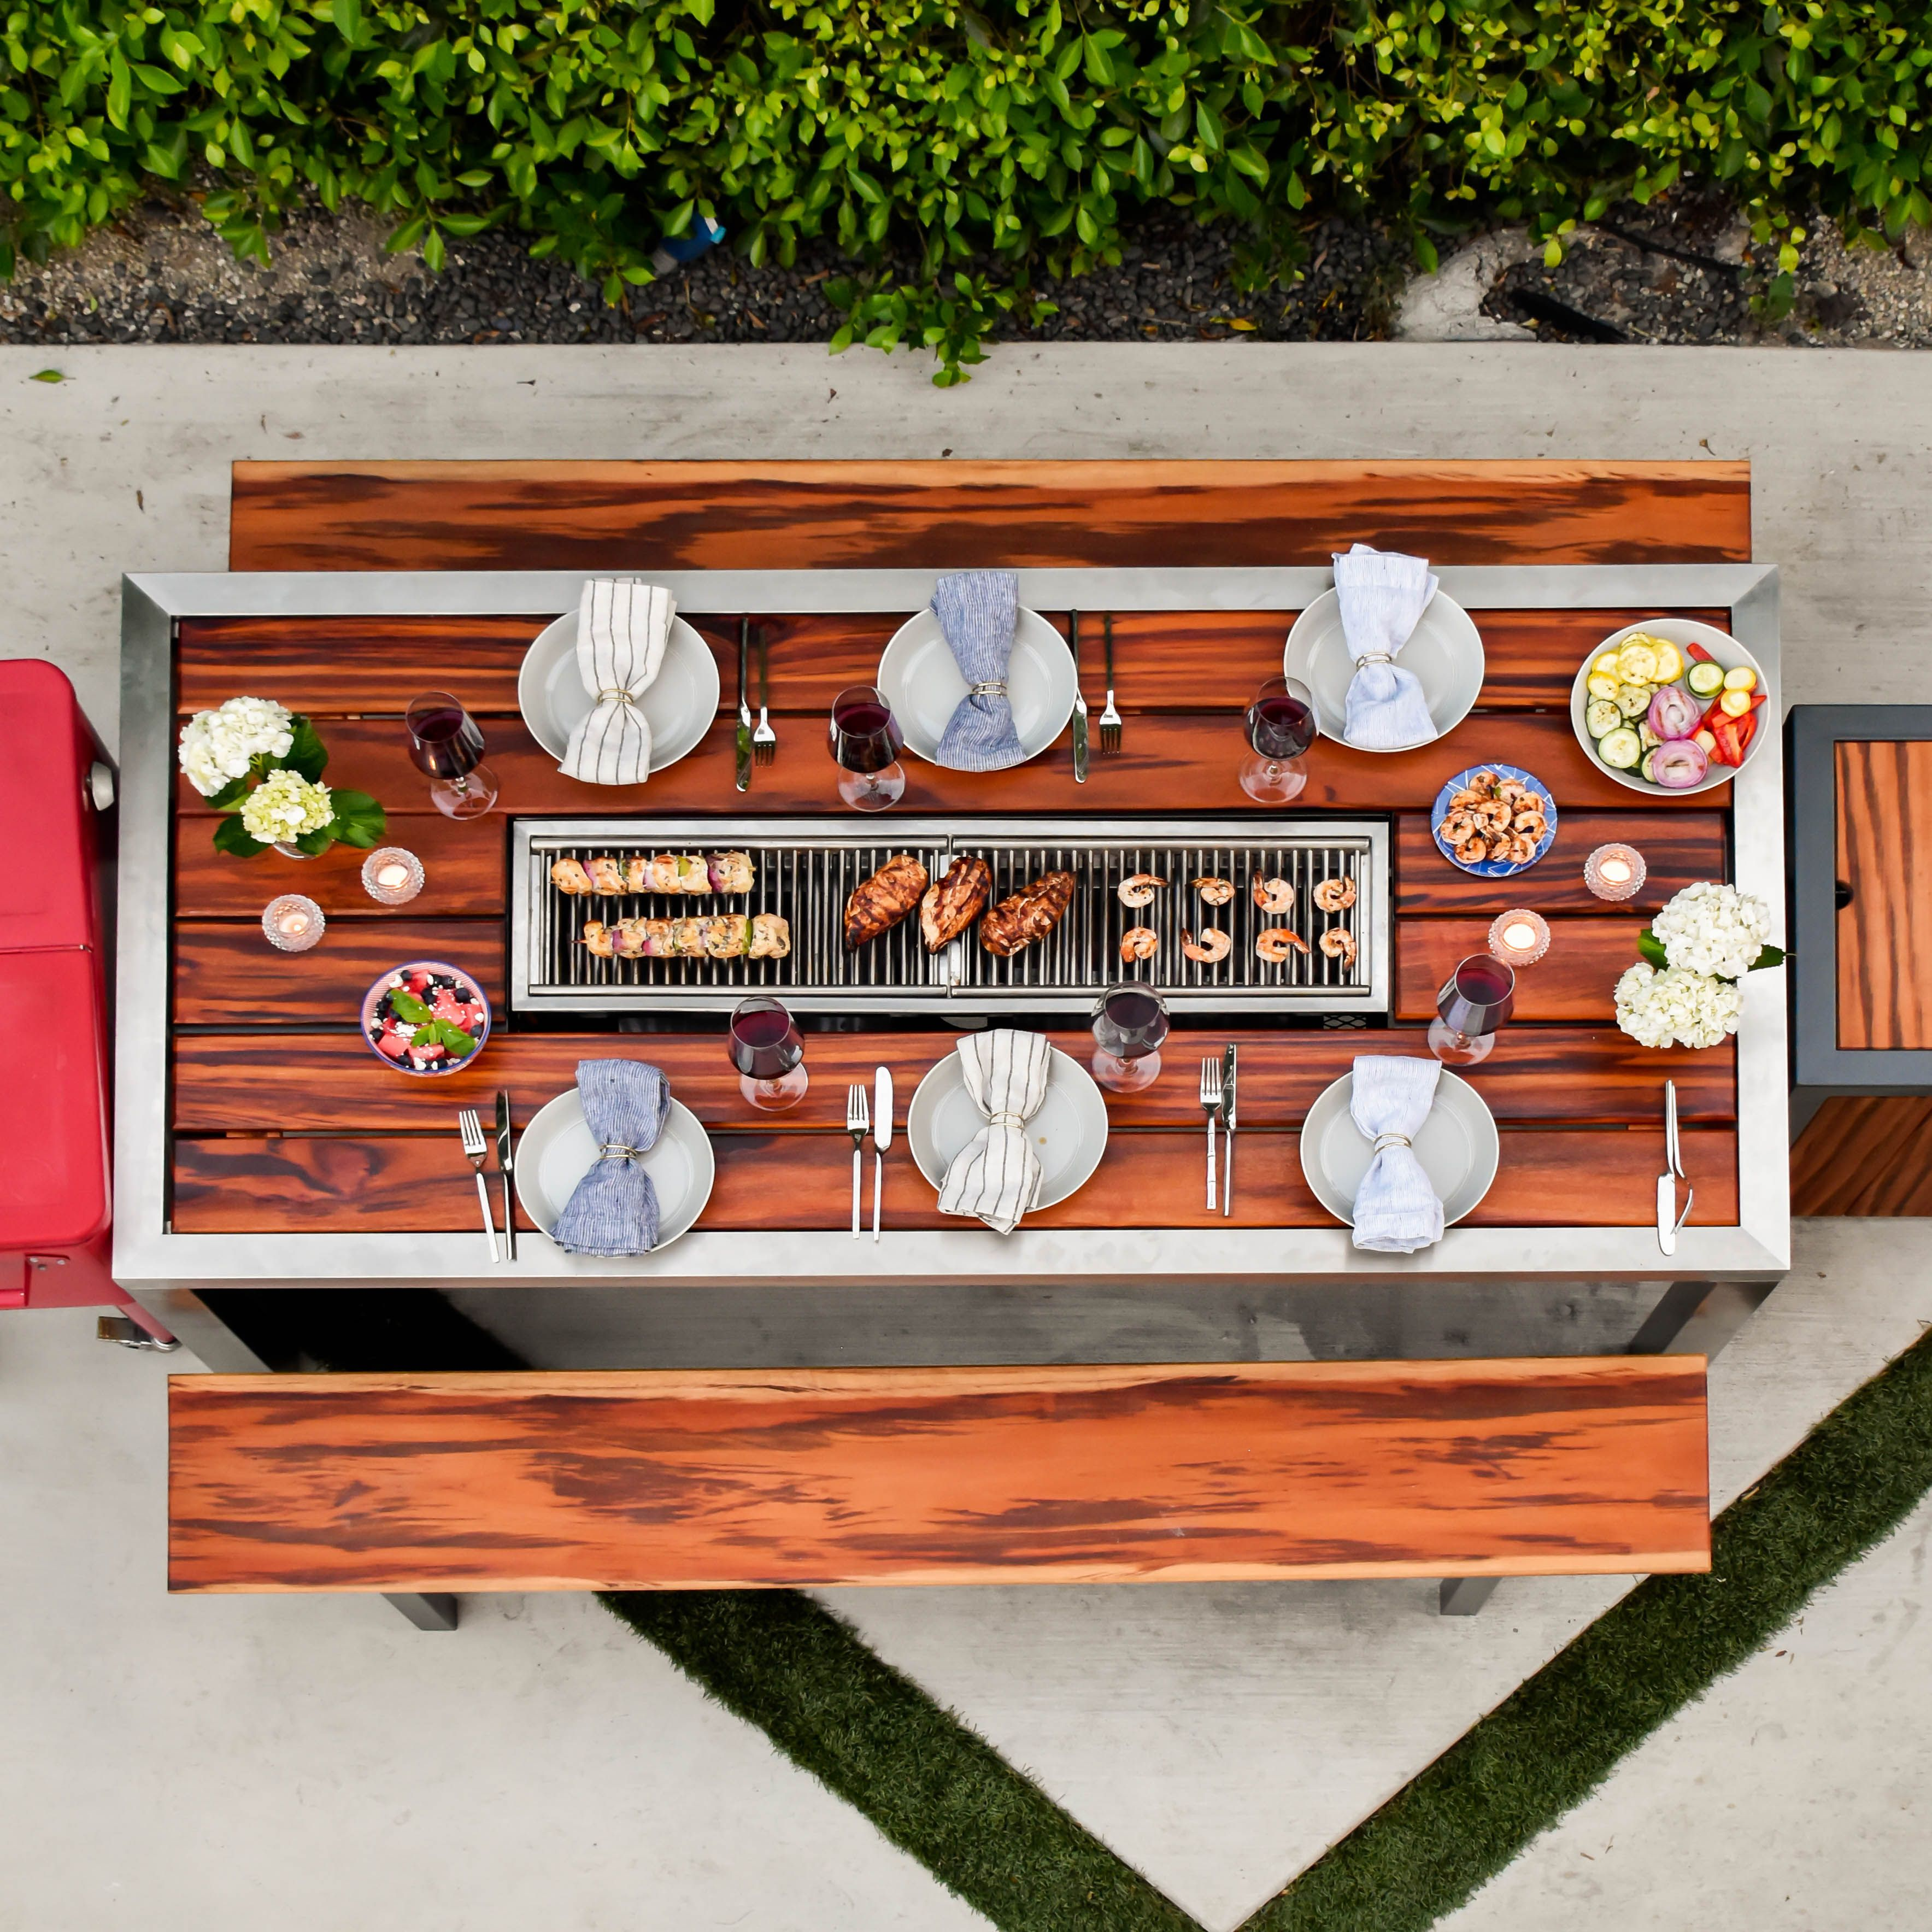 Come Together In 2020 Bbq Table Outdoor Bbq Grill Outdoor Bbq